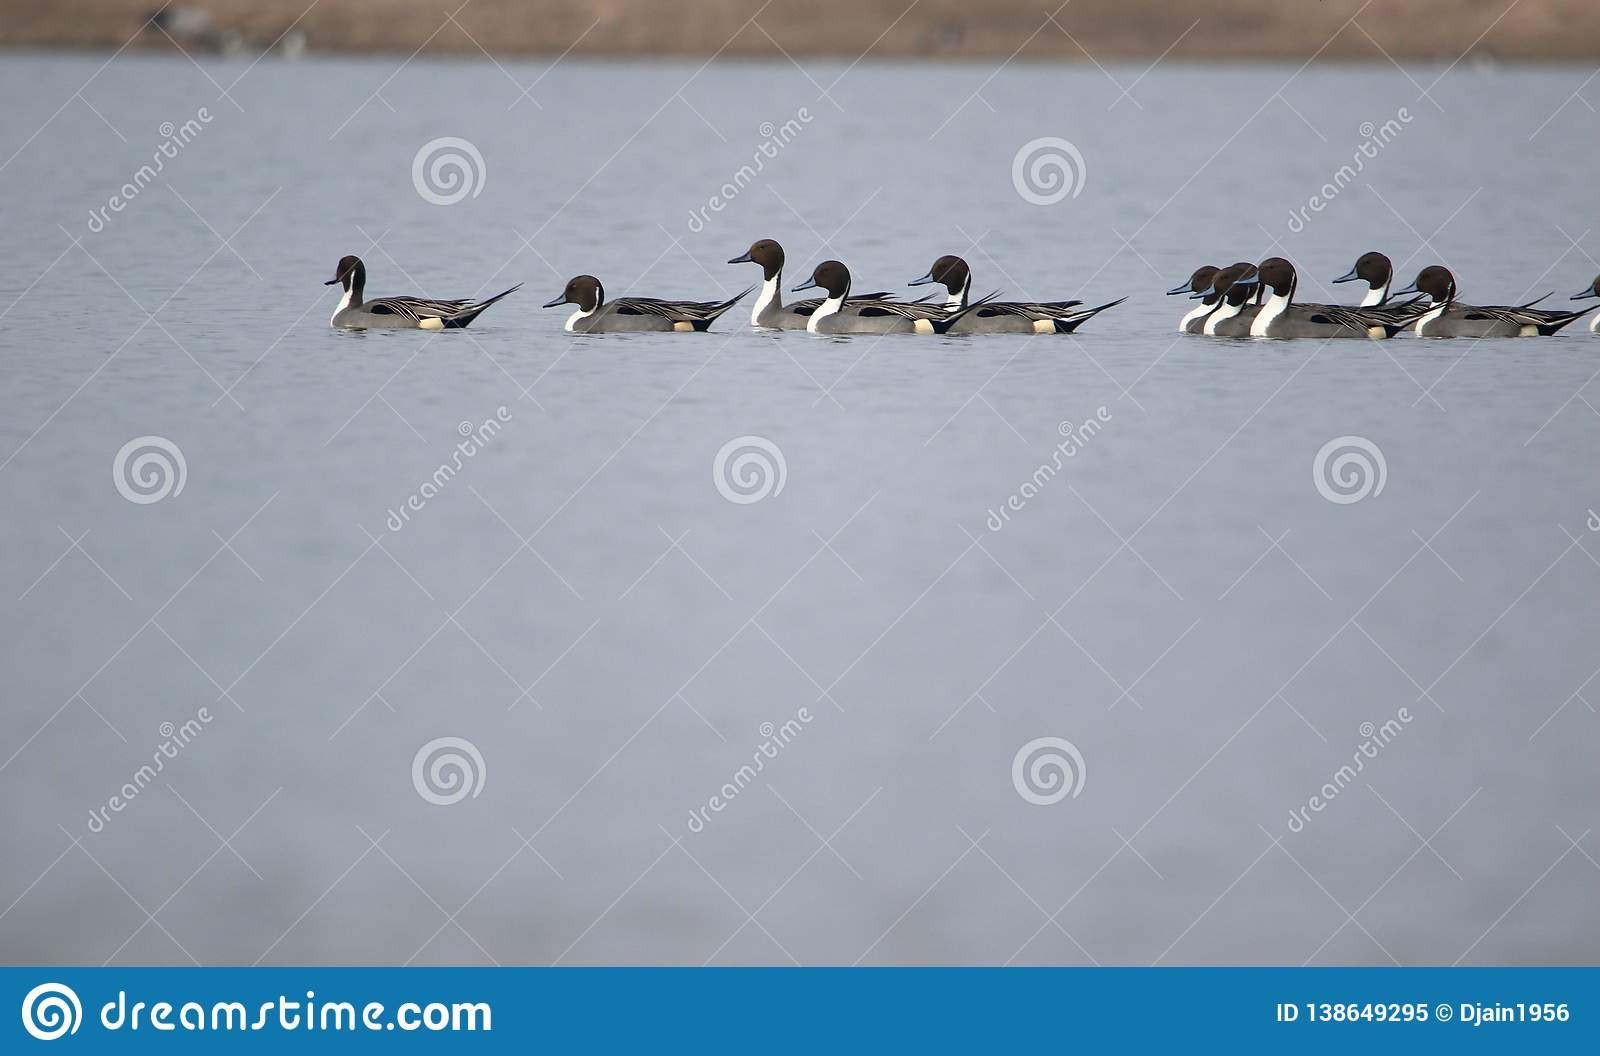 Family of northen pintail duck